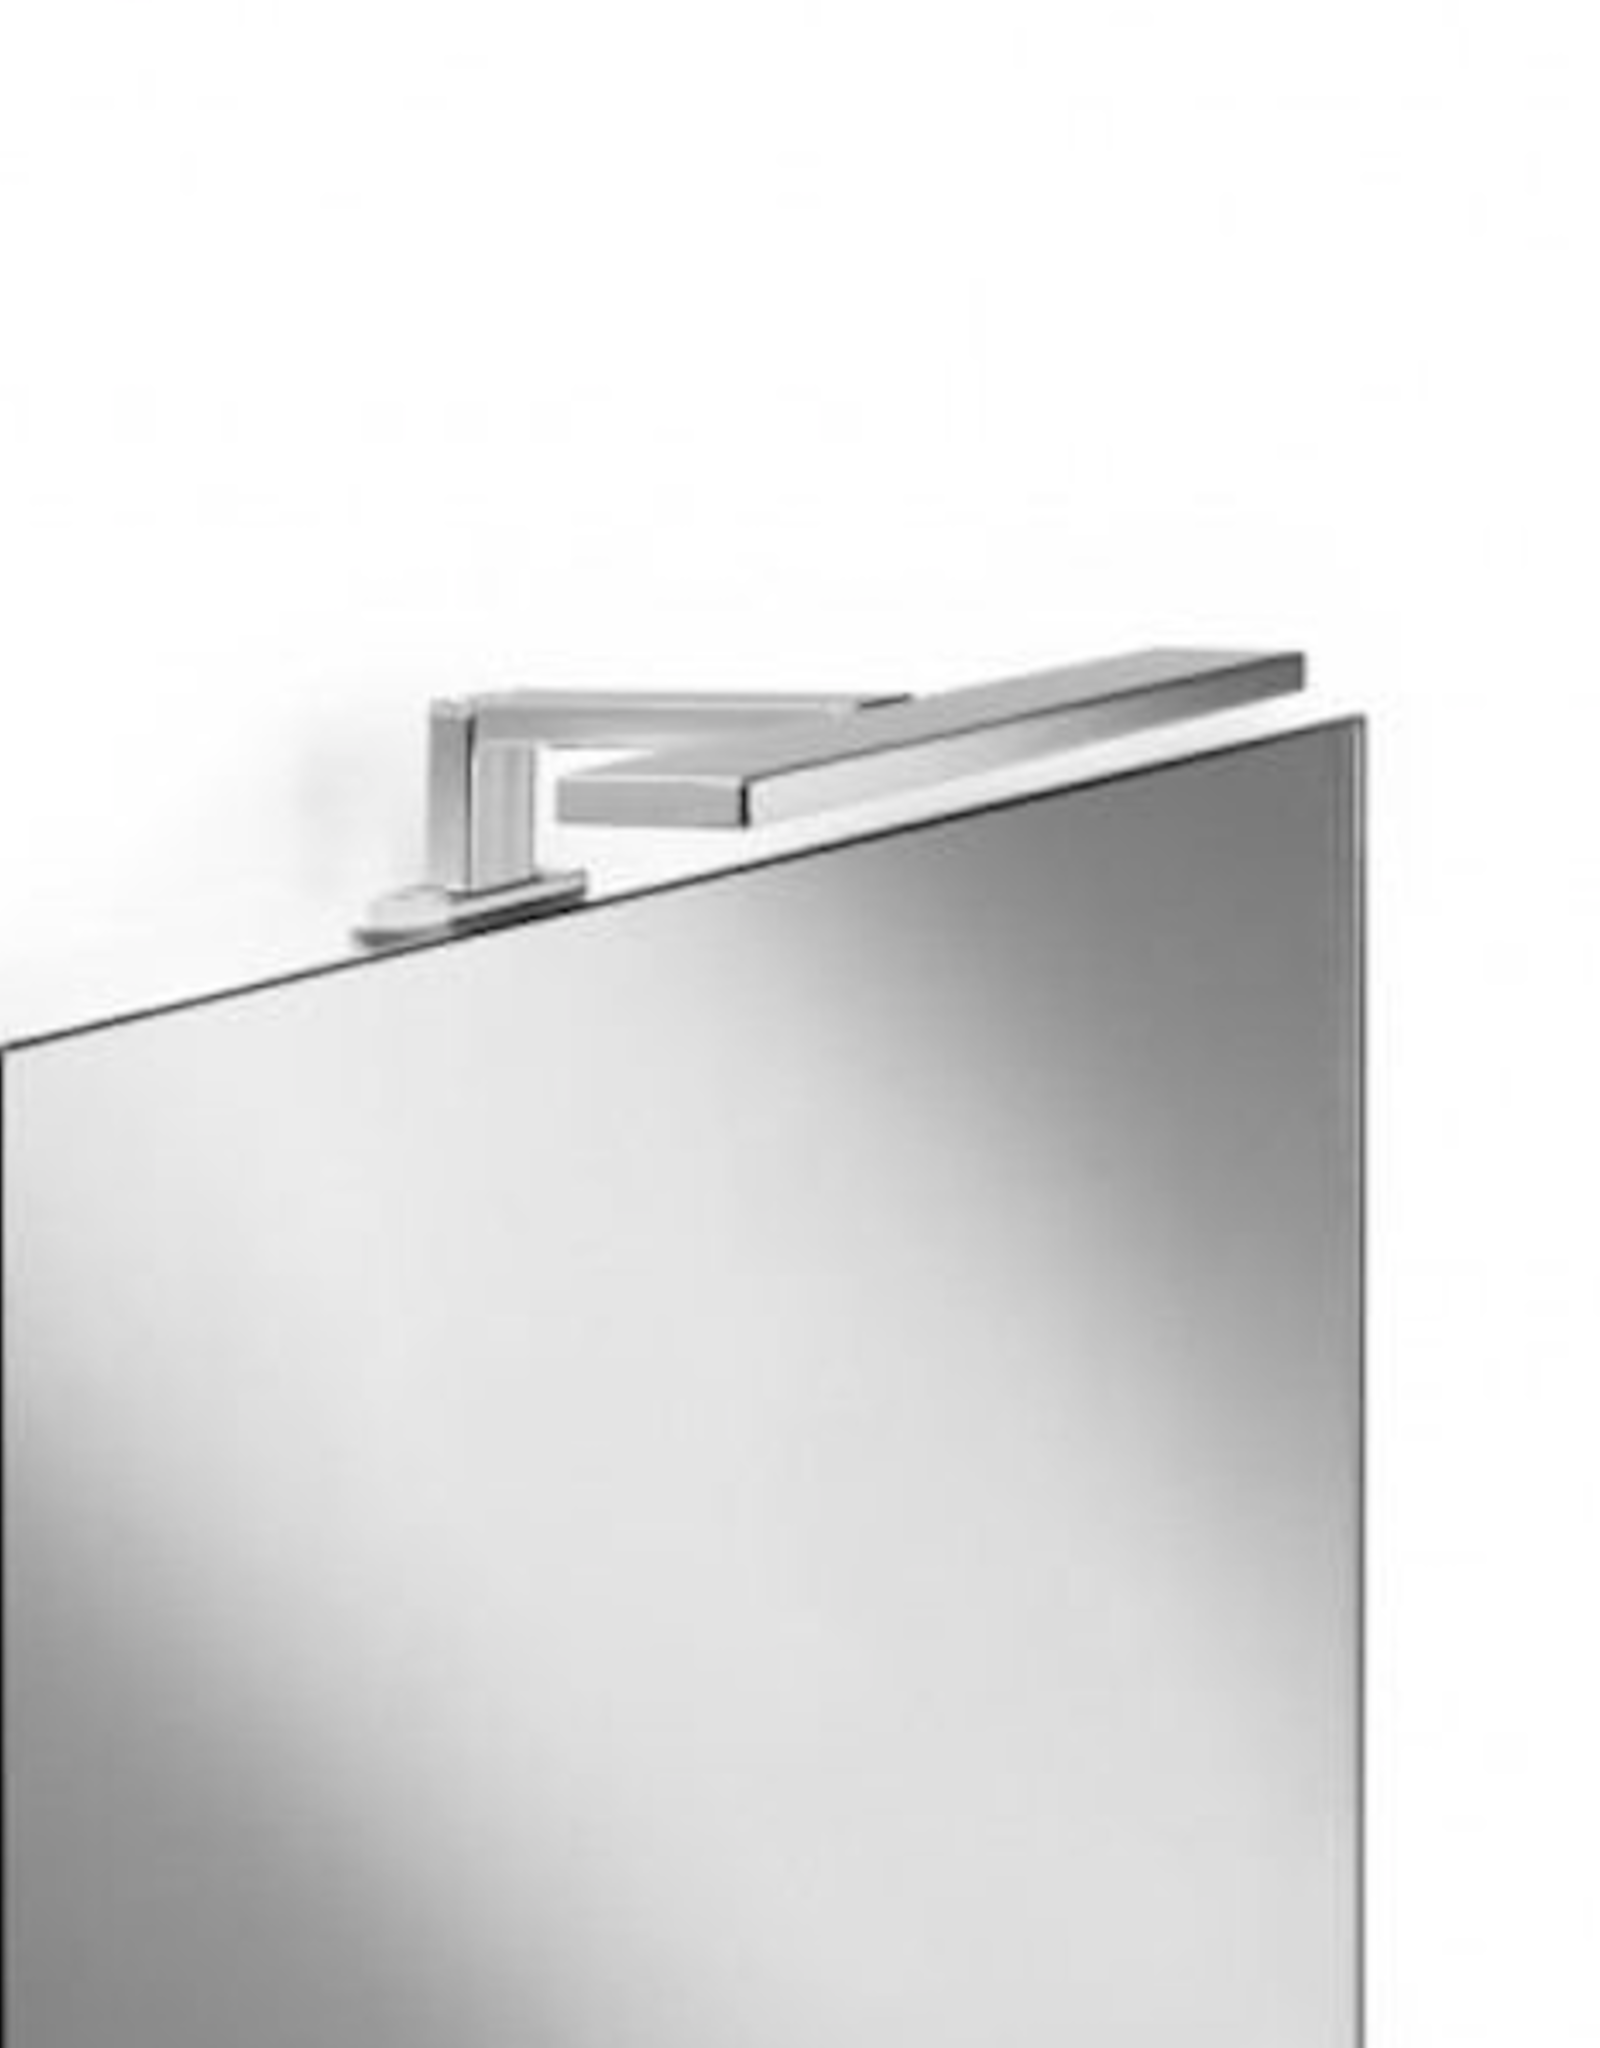 Ciari mirror lamp with LED-lighting 6W - outlet